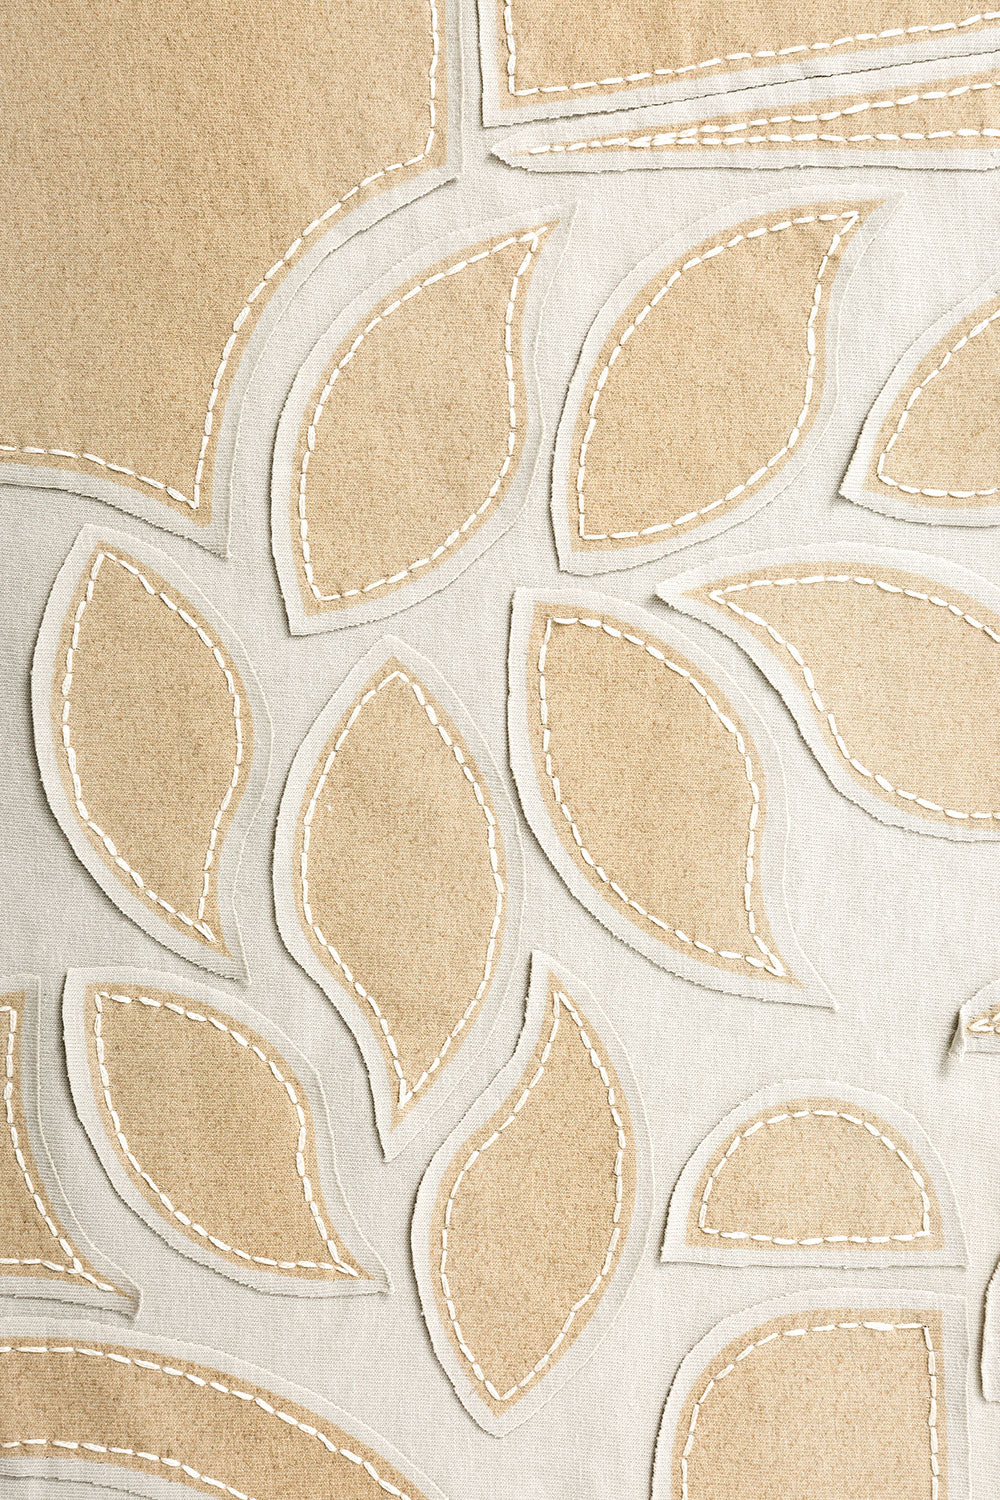 The School of Making Abstract Design Stencil for Embroidery DIY Kits